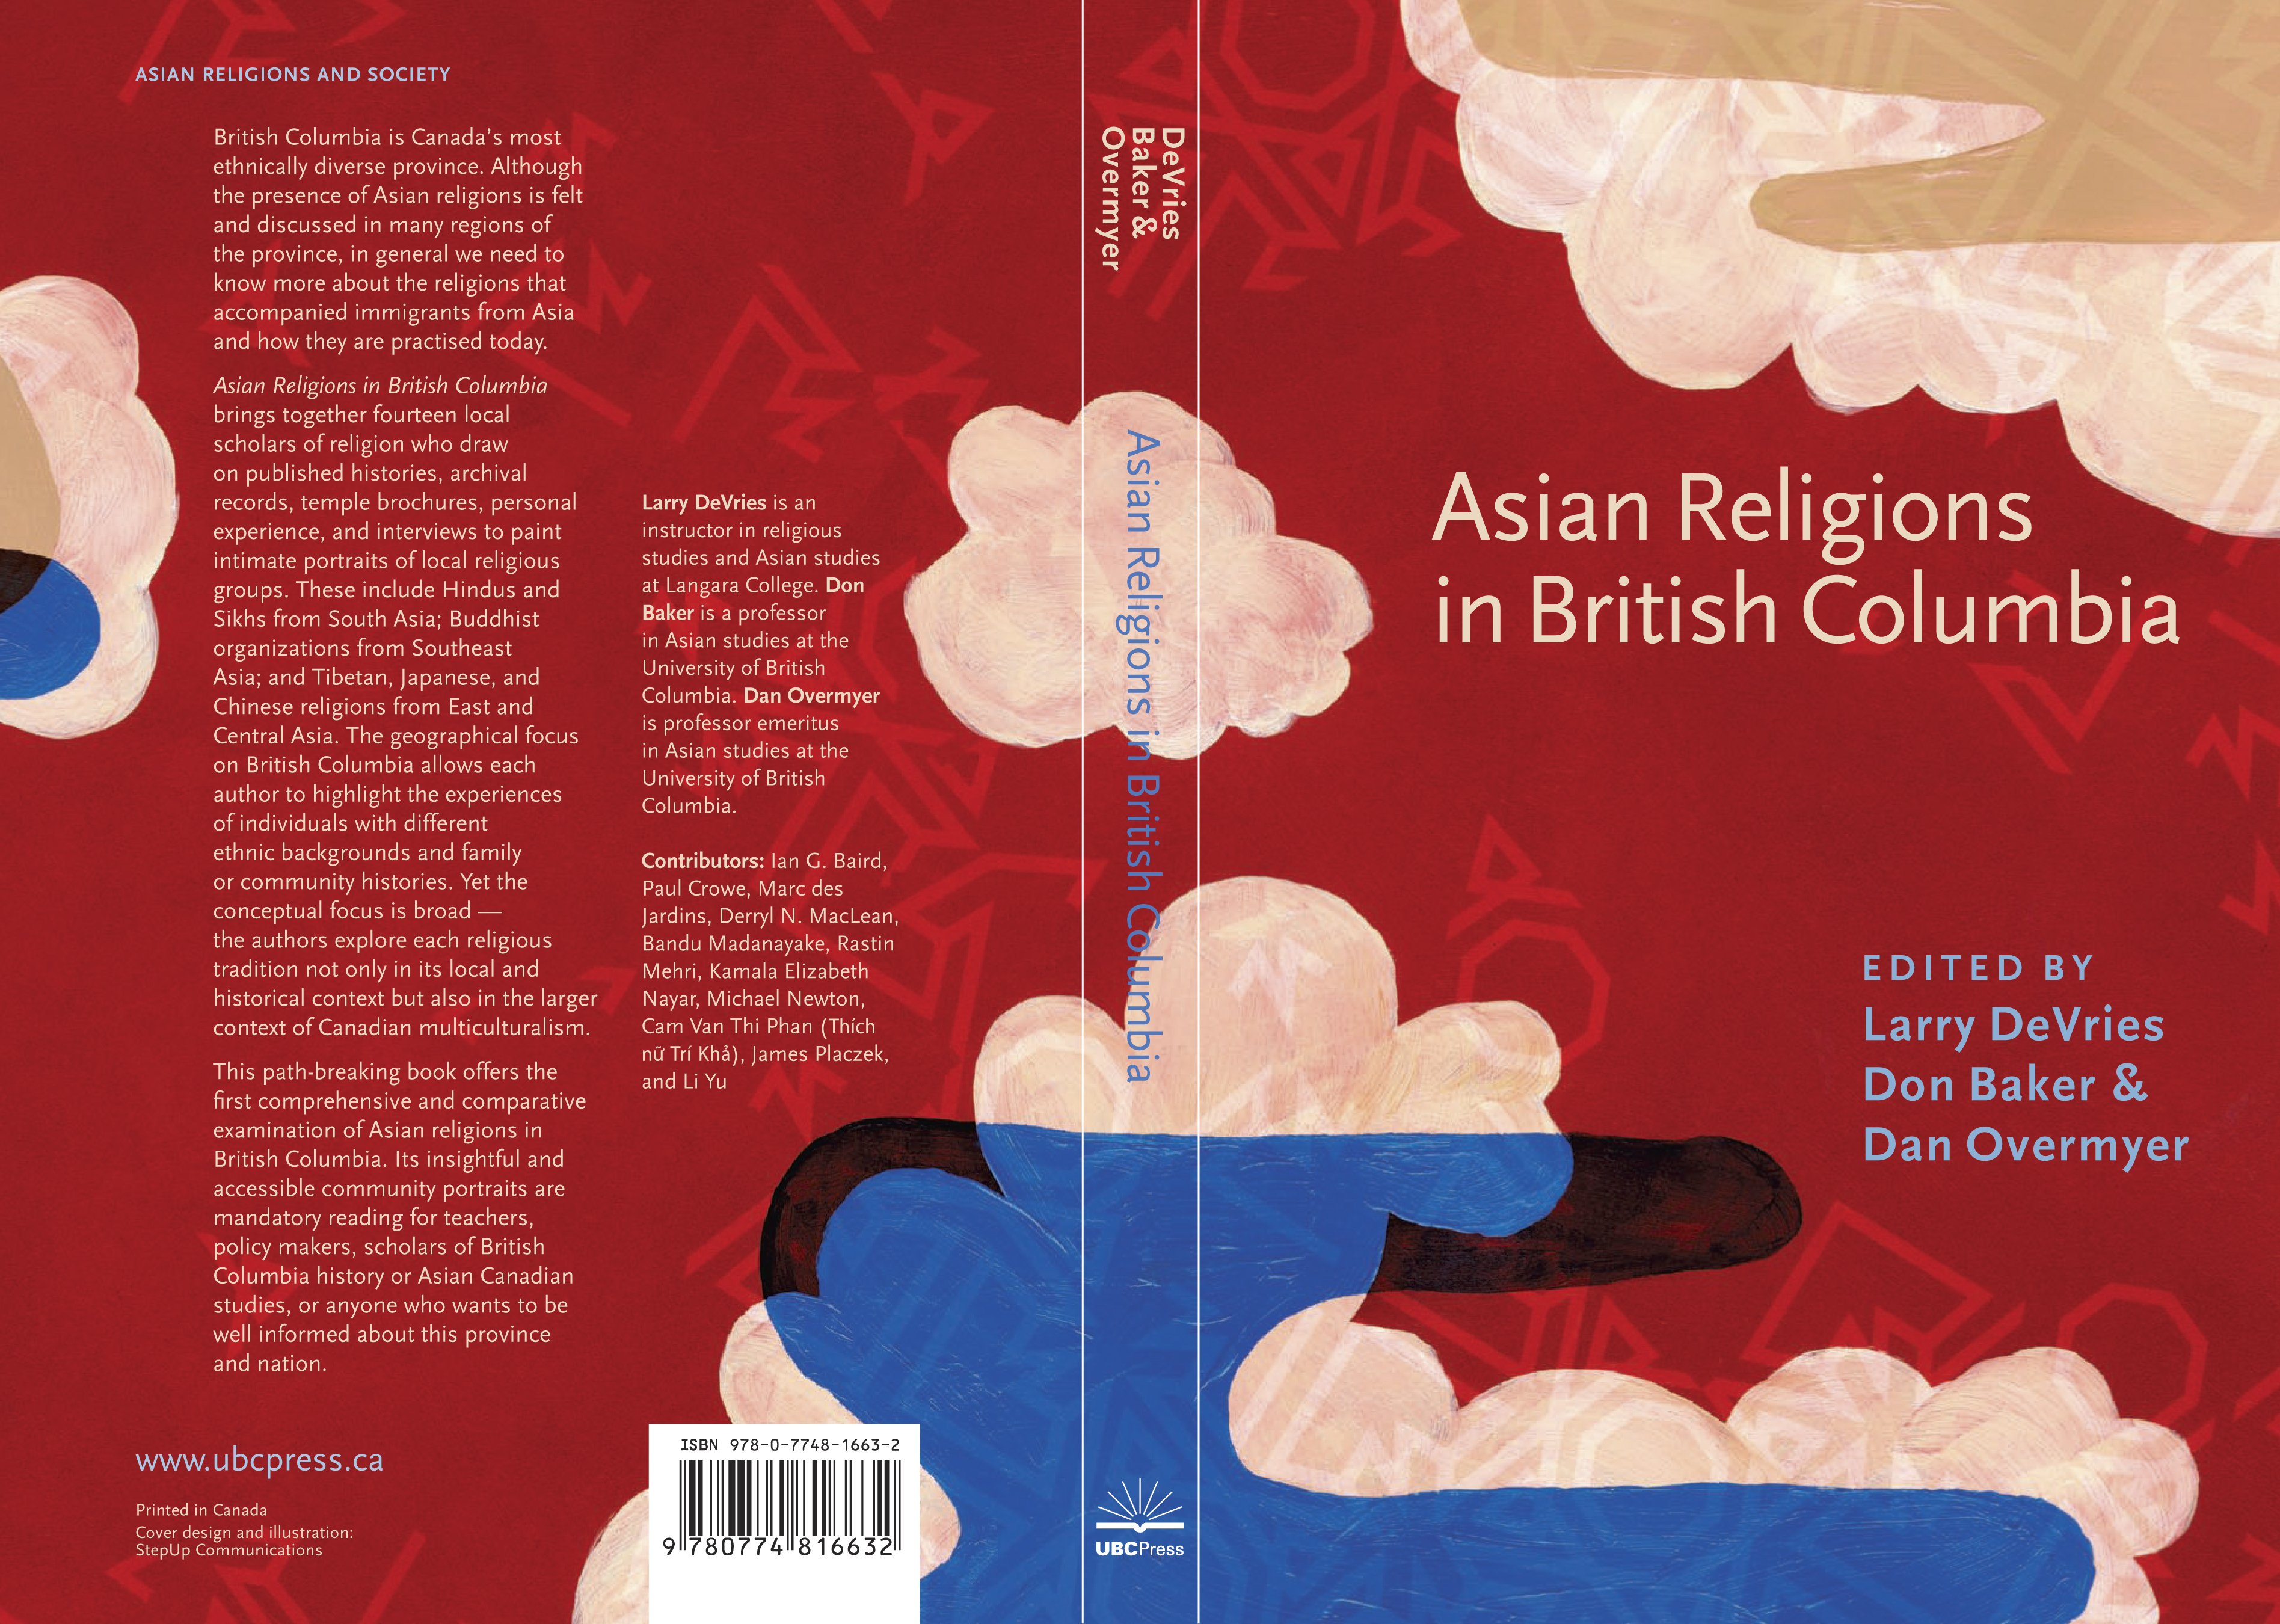 Book Cover Illustration Contract ~ Book cover design and illustration emily carr university